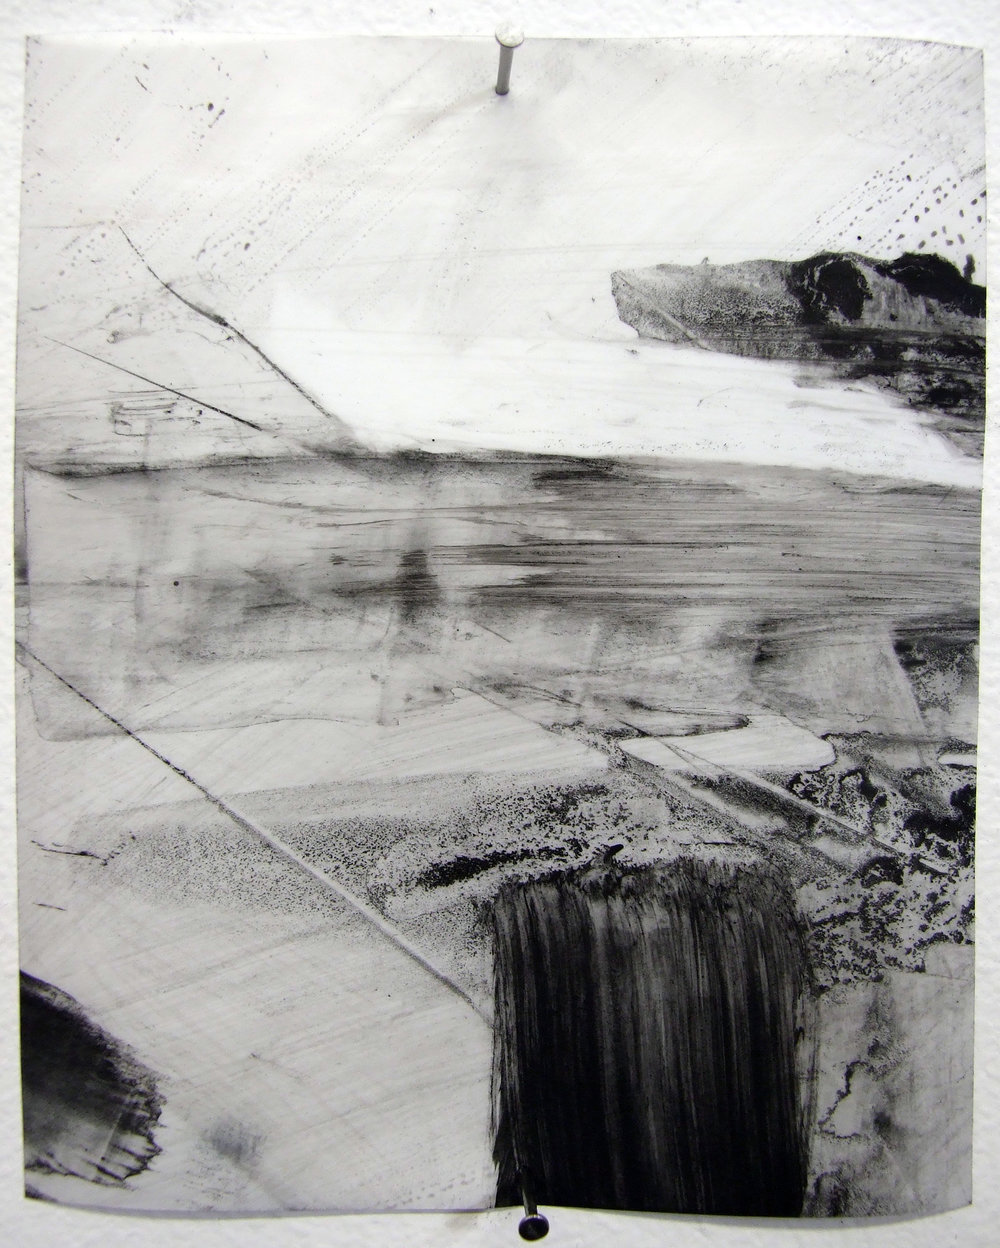 N.o 18, charcoal and gesso on mylar, 2012